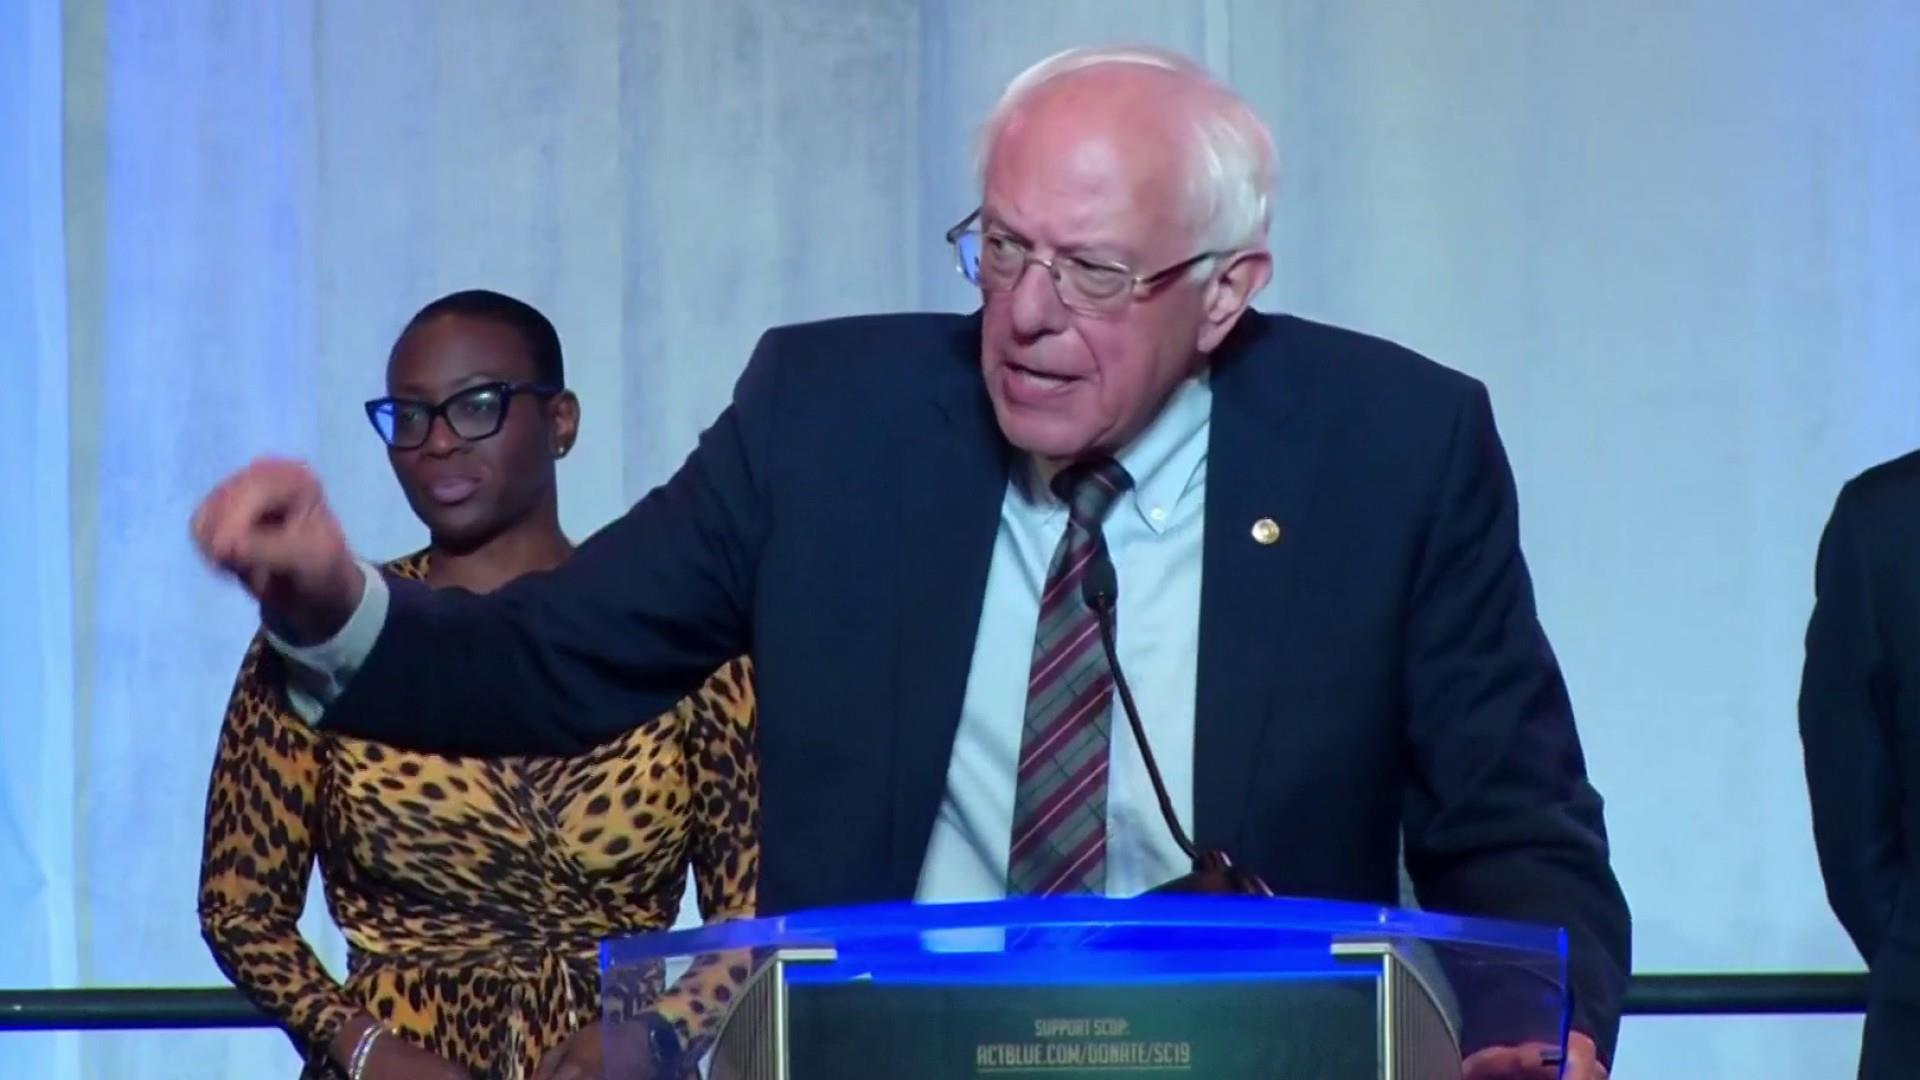 Sen. Sanders gives speech at South Carolina Democratic Convention